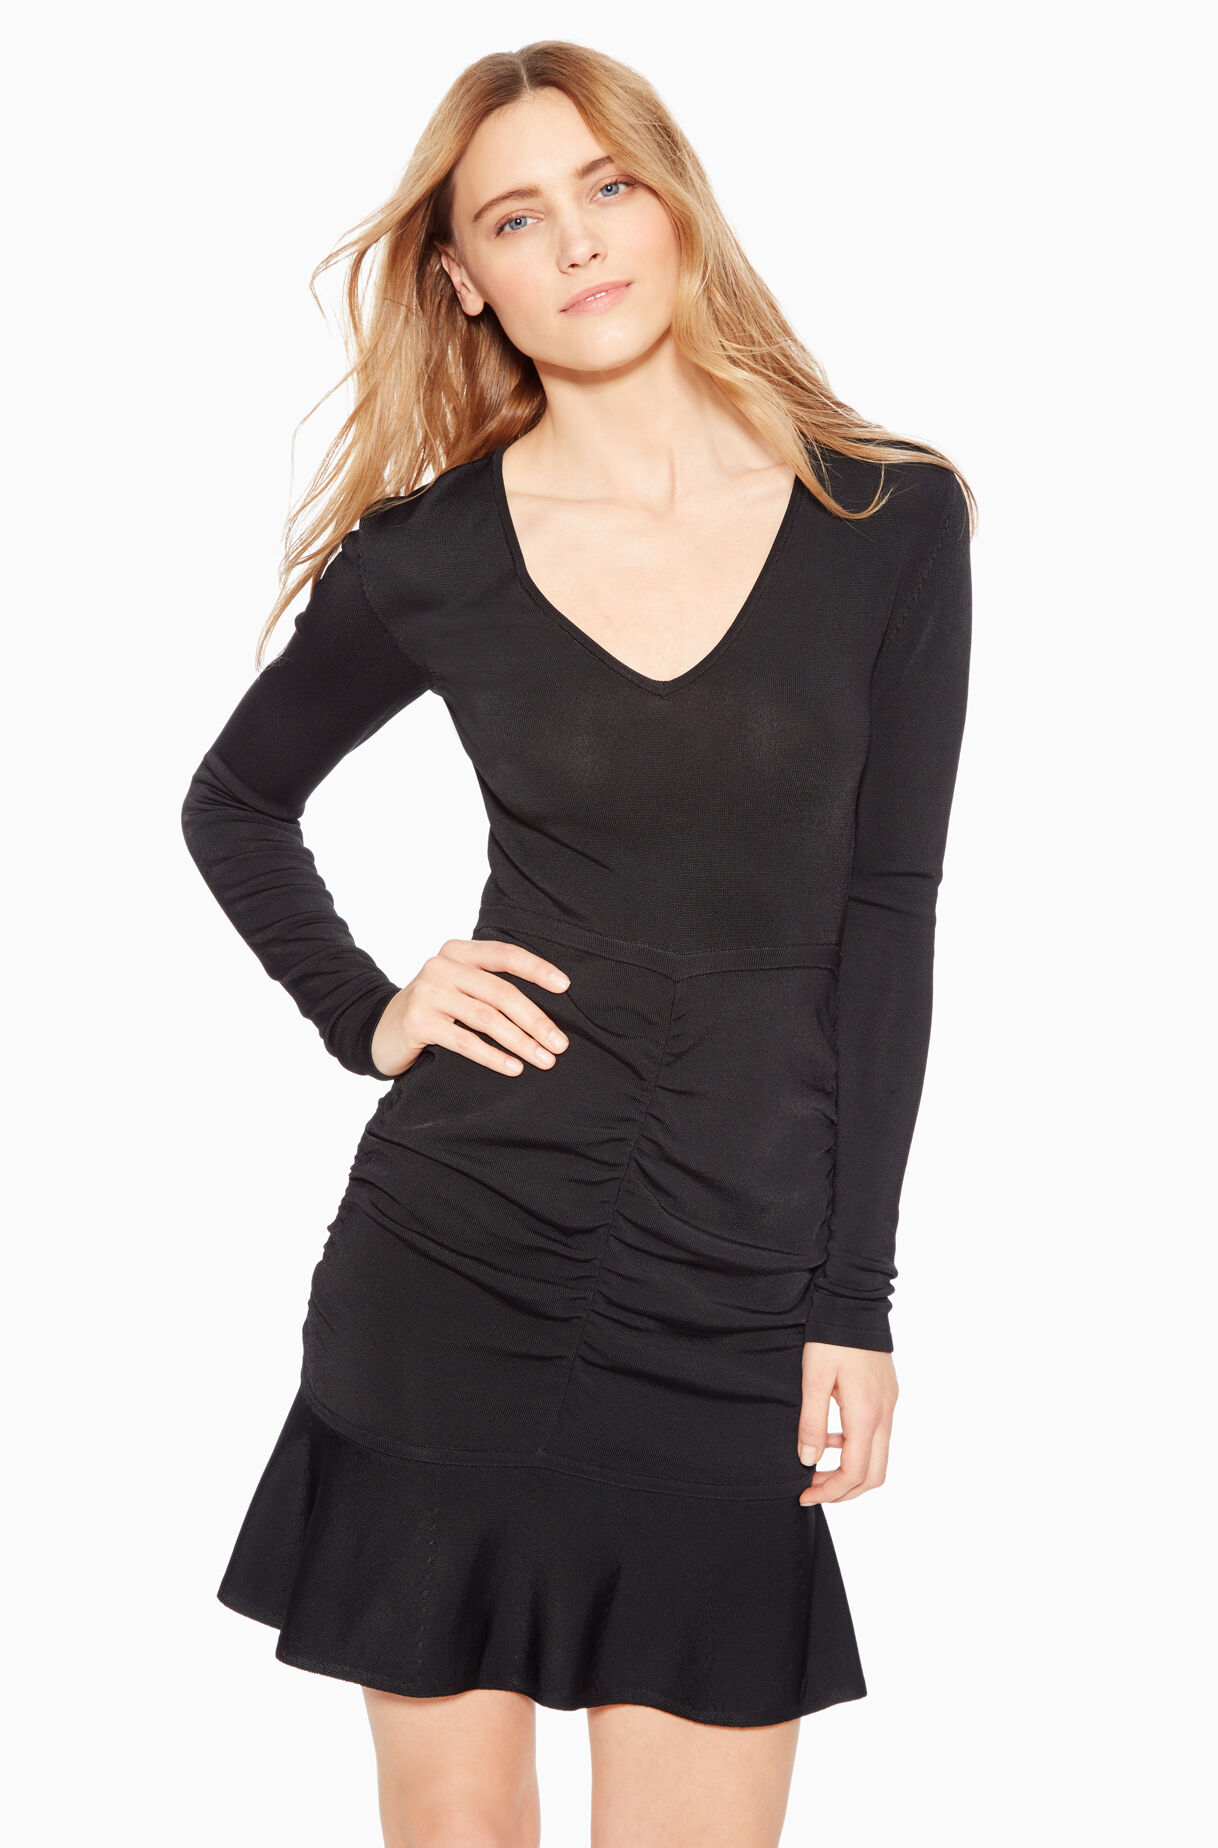 to wear - Knit Black dress pictures video